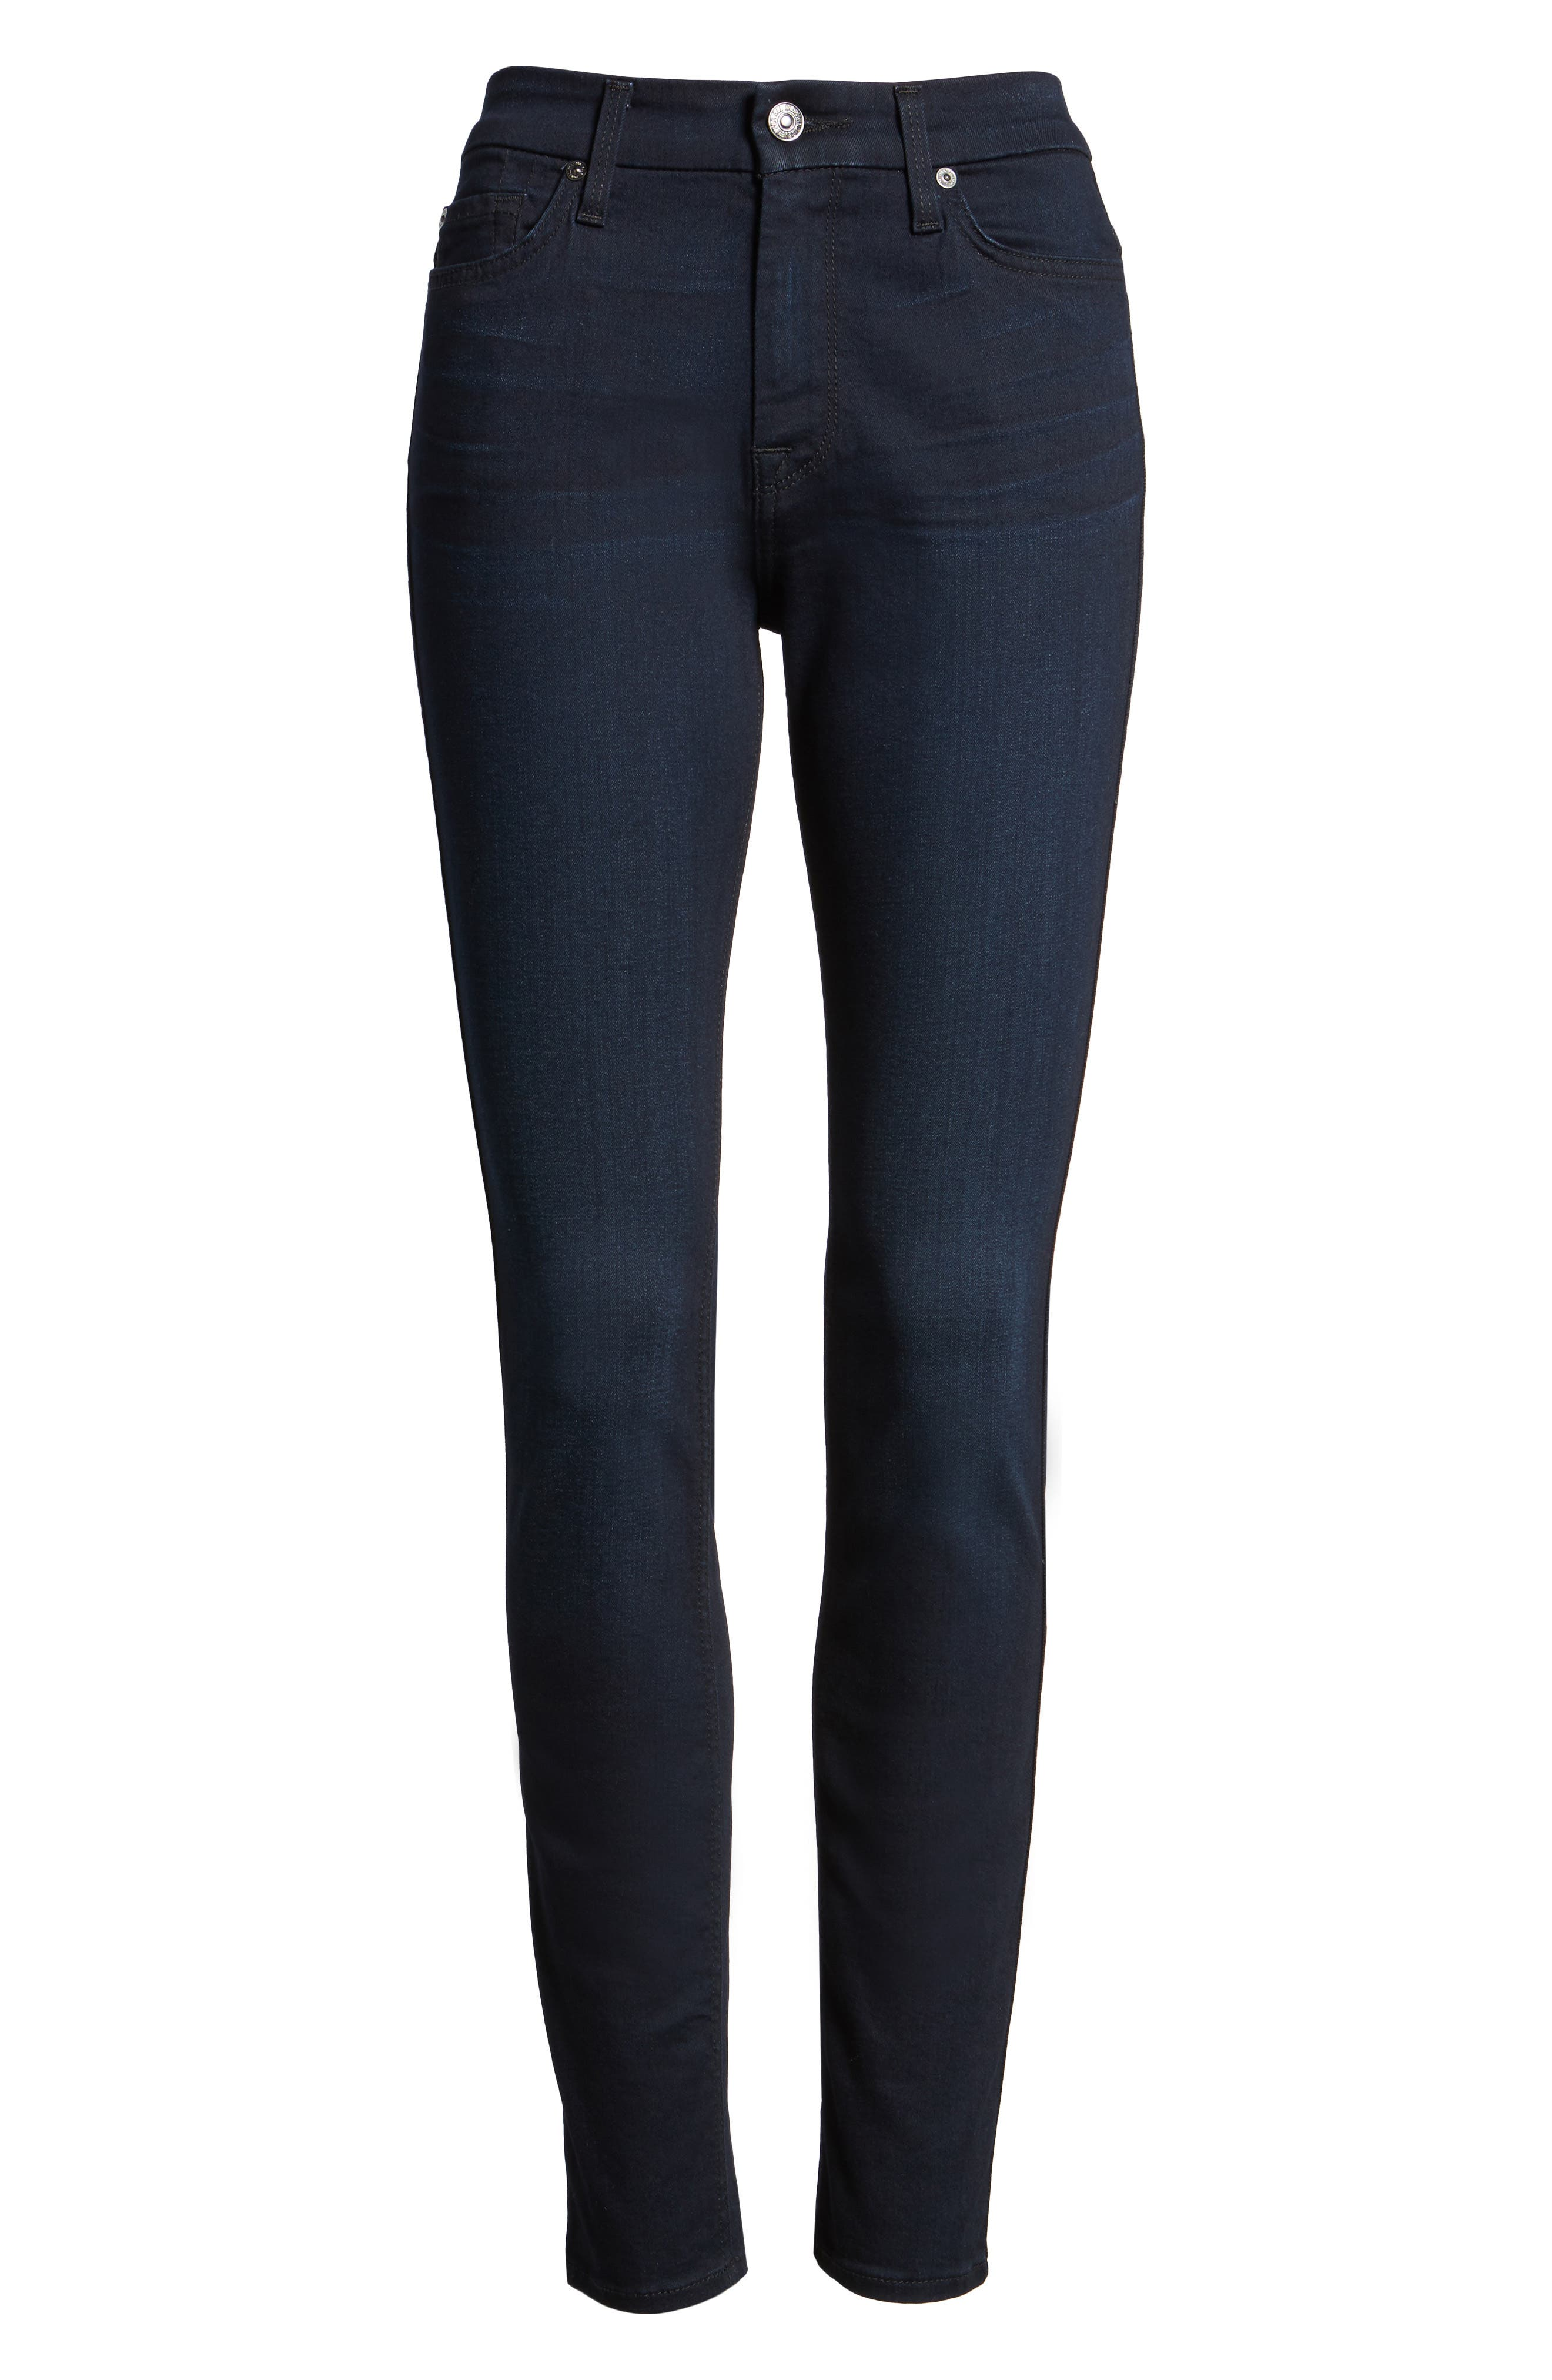 7 For All Mankind b(air) High Waist Skinny Jeans,                             Main thumbnail 1, color,                             400